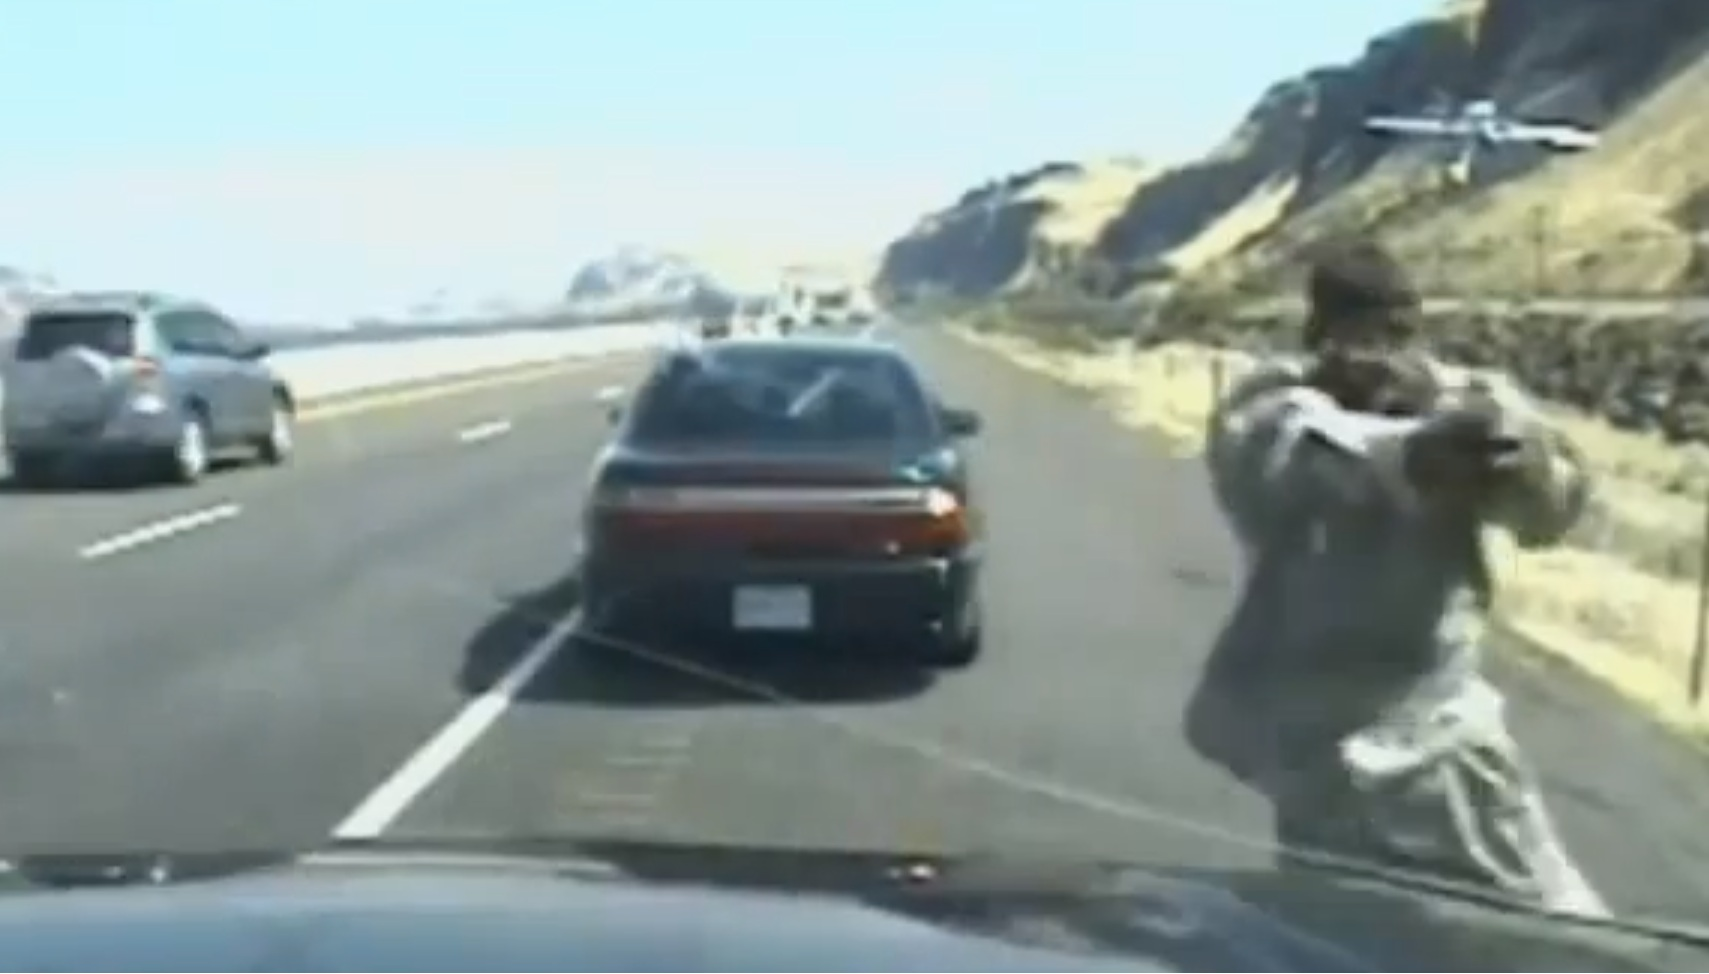 John Van Allen II wields his gun at an officer after being pulled over (Picture: YouTube/World News Videos)